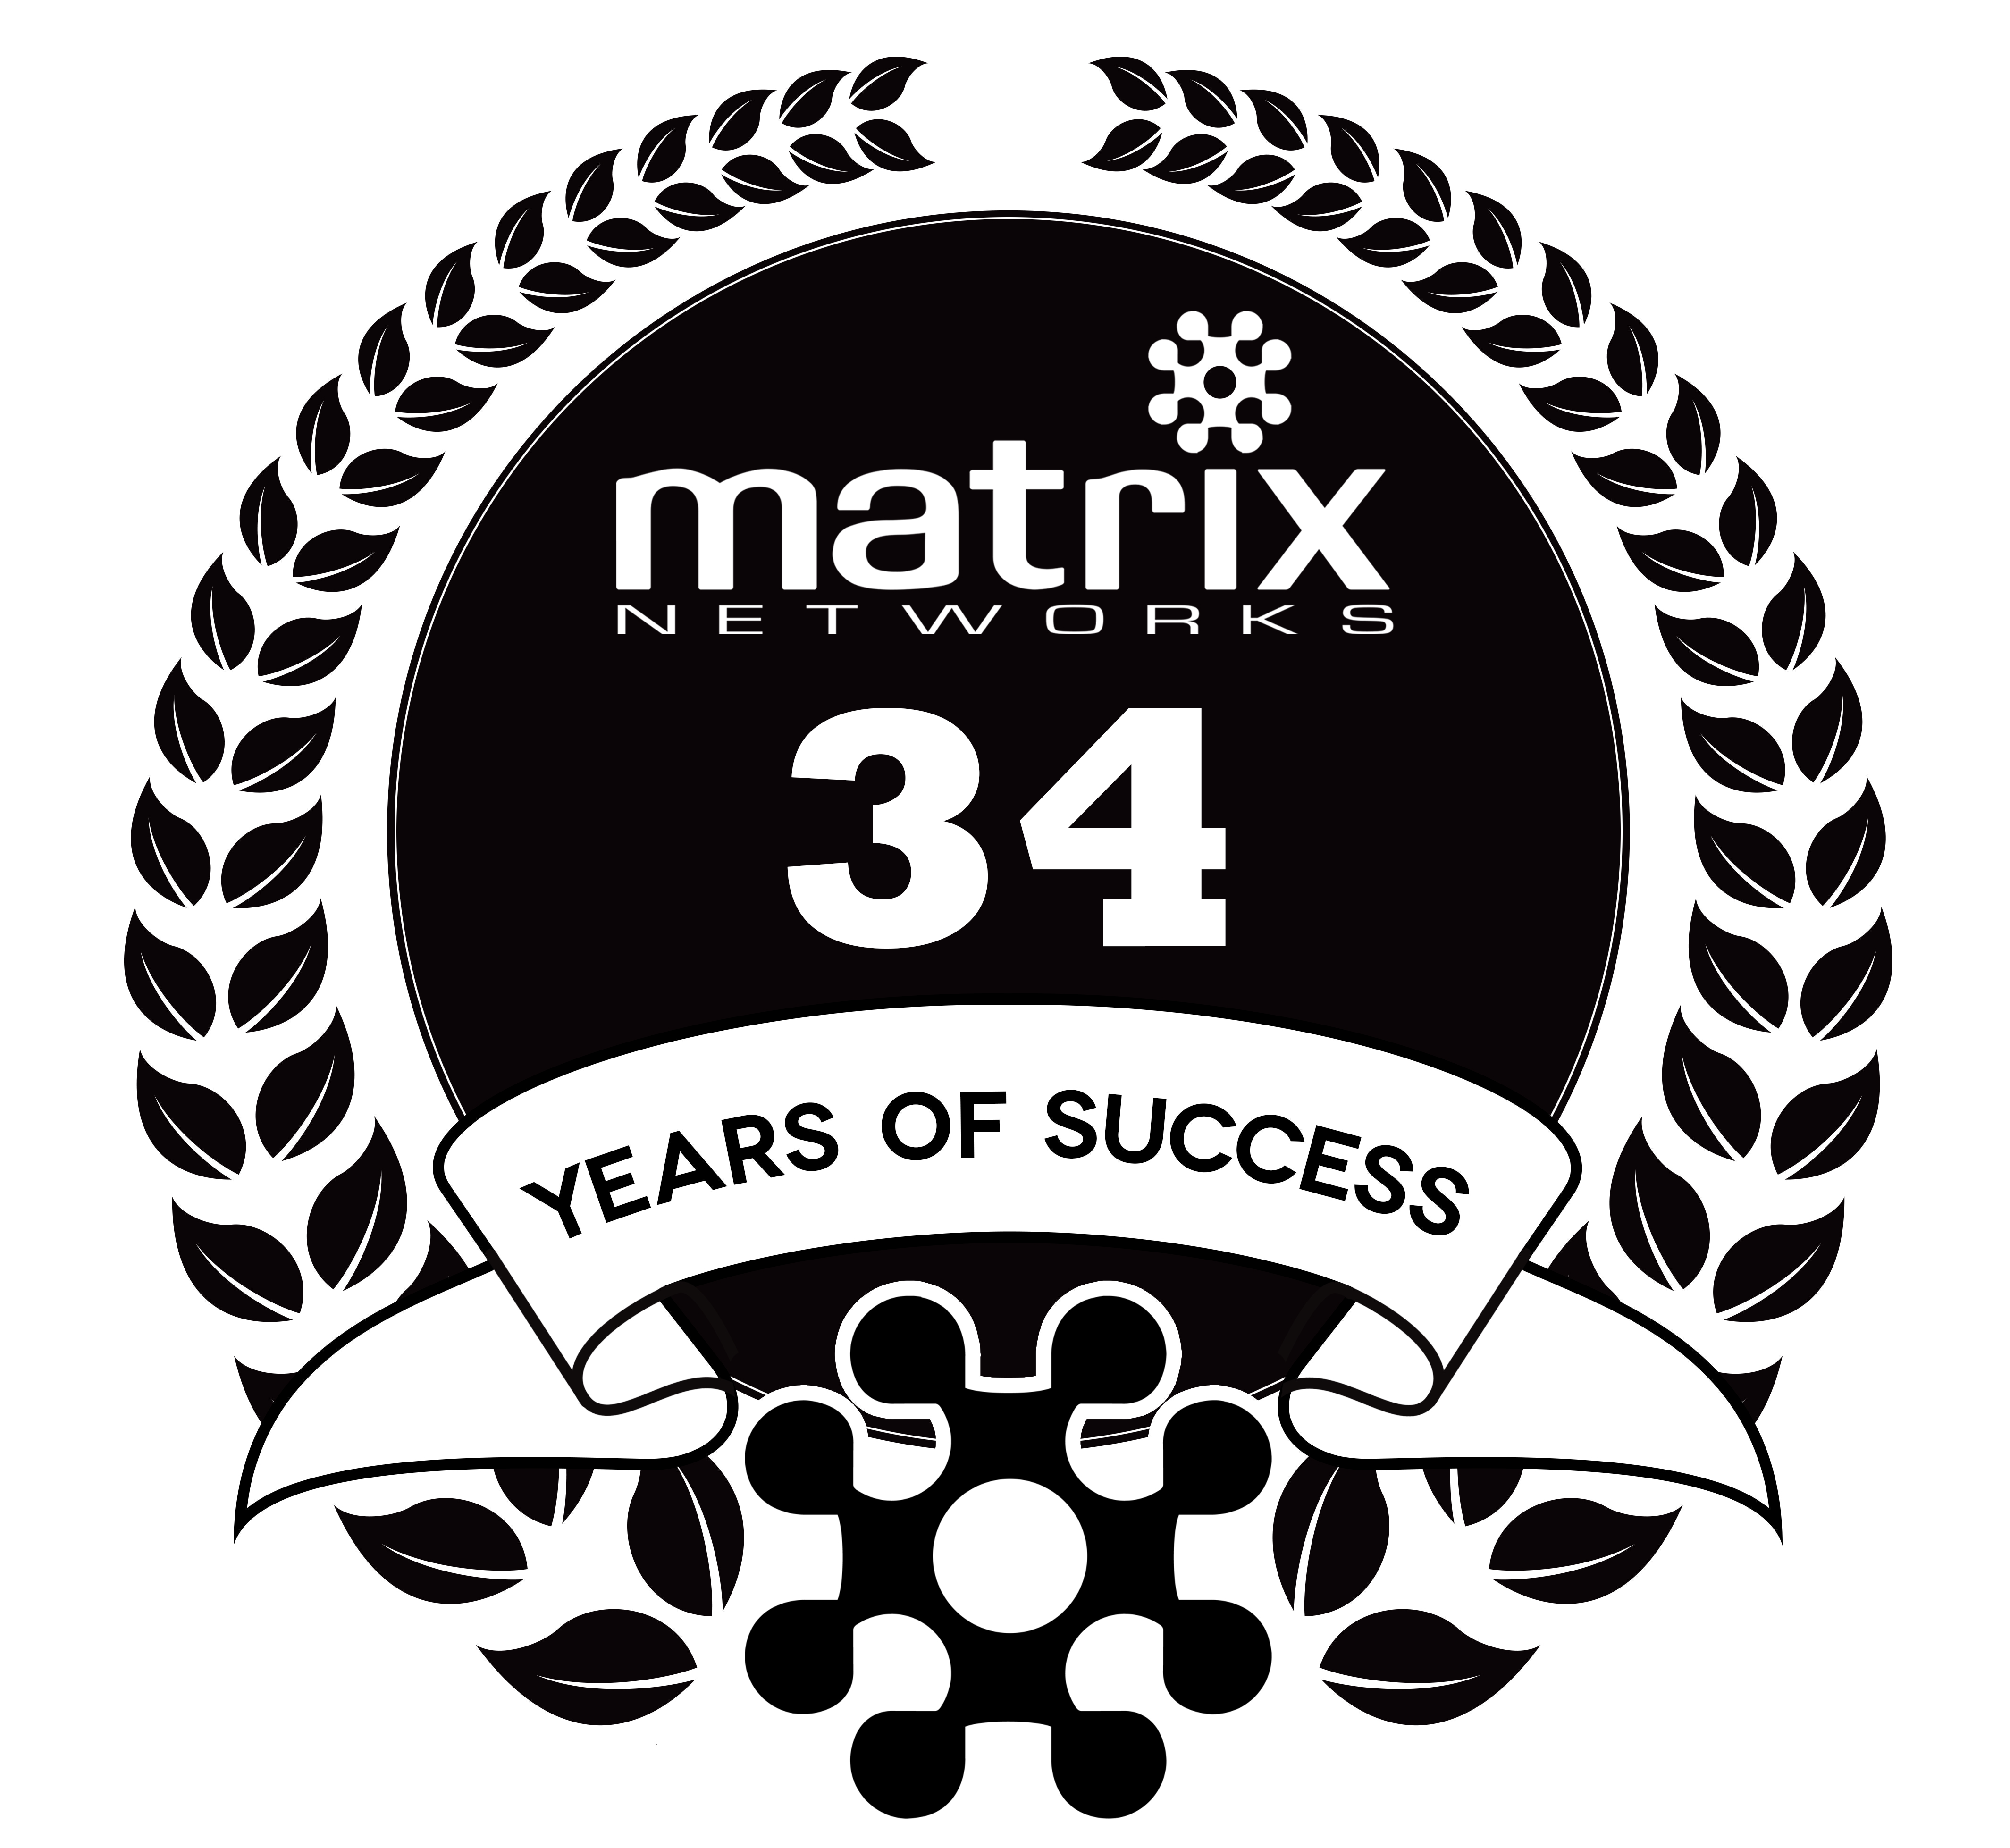 Matrix Networks has been in business since 1984 - Located in Portland Oregon